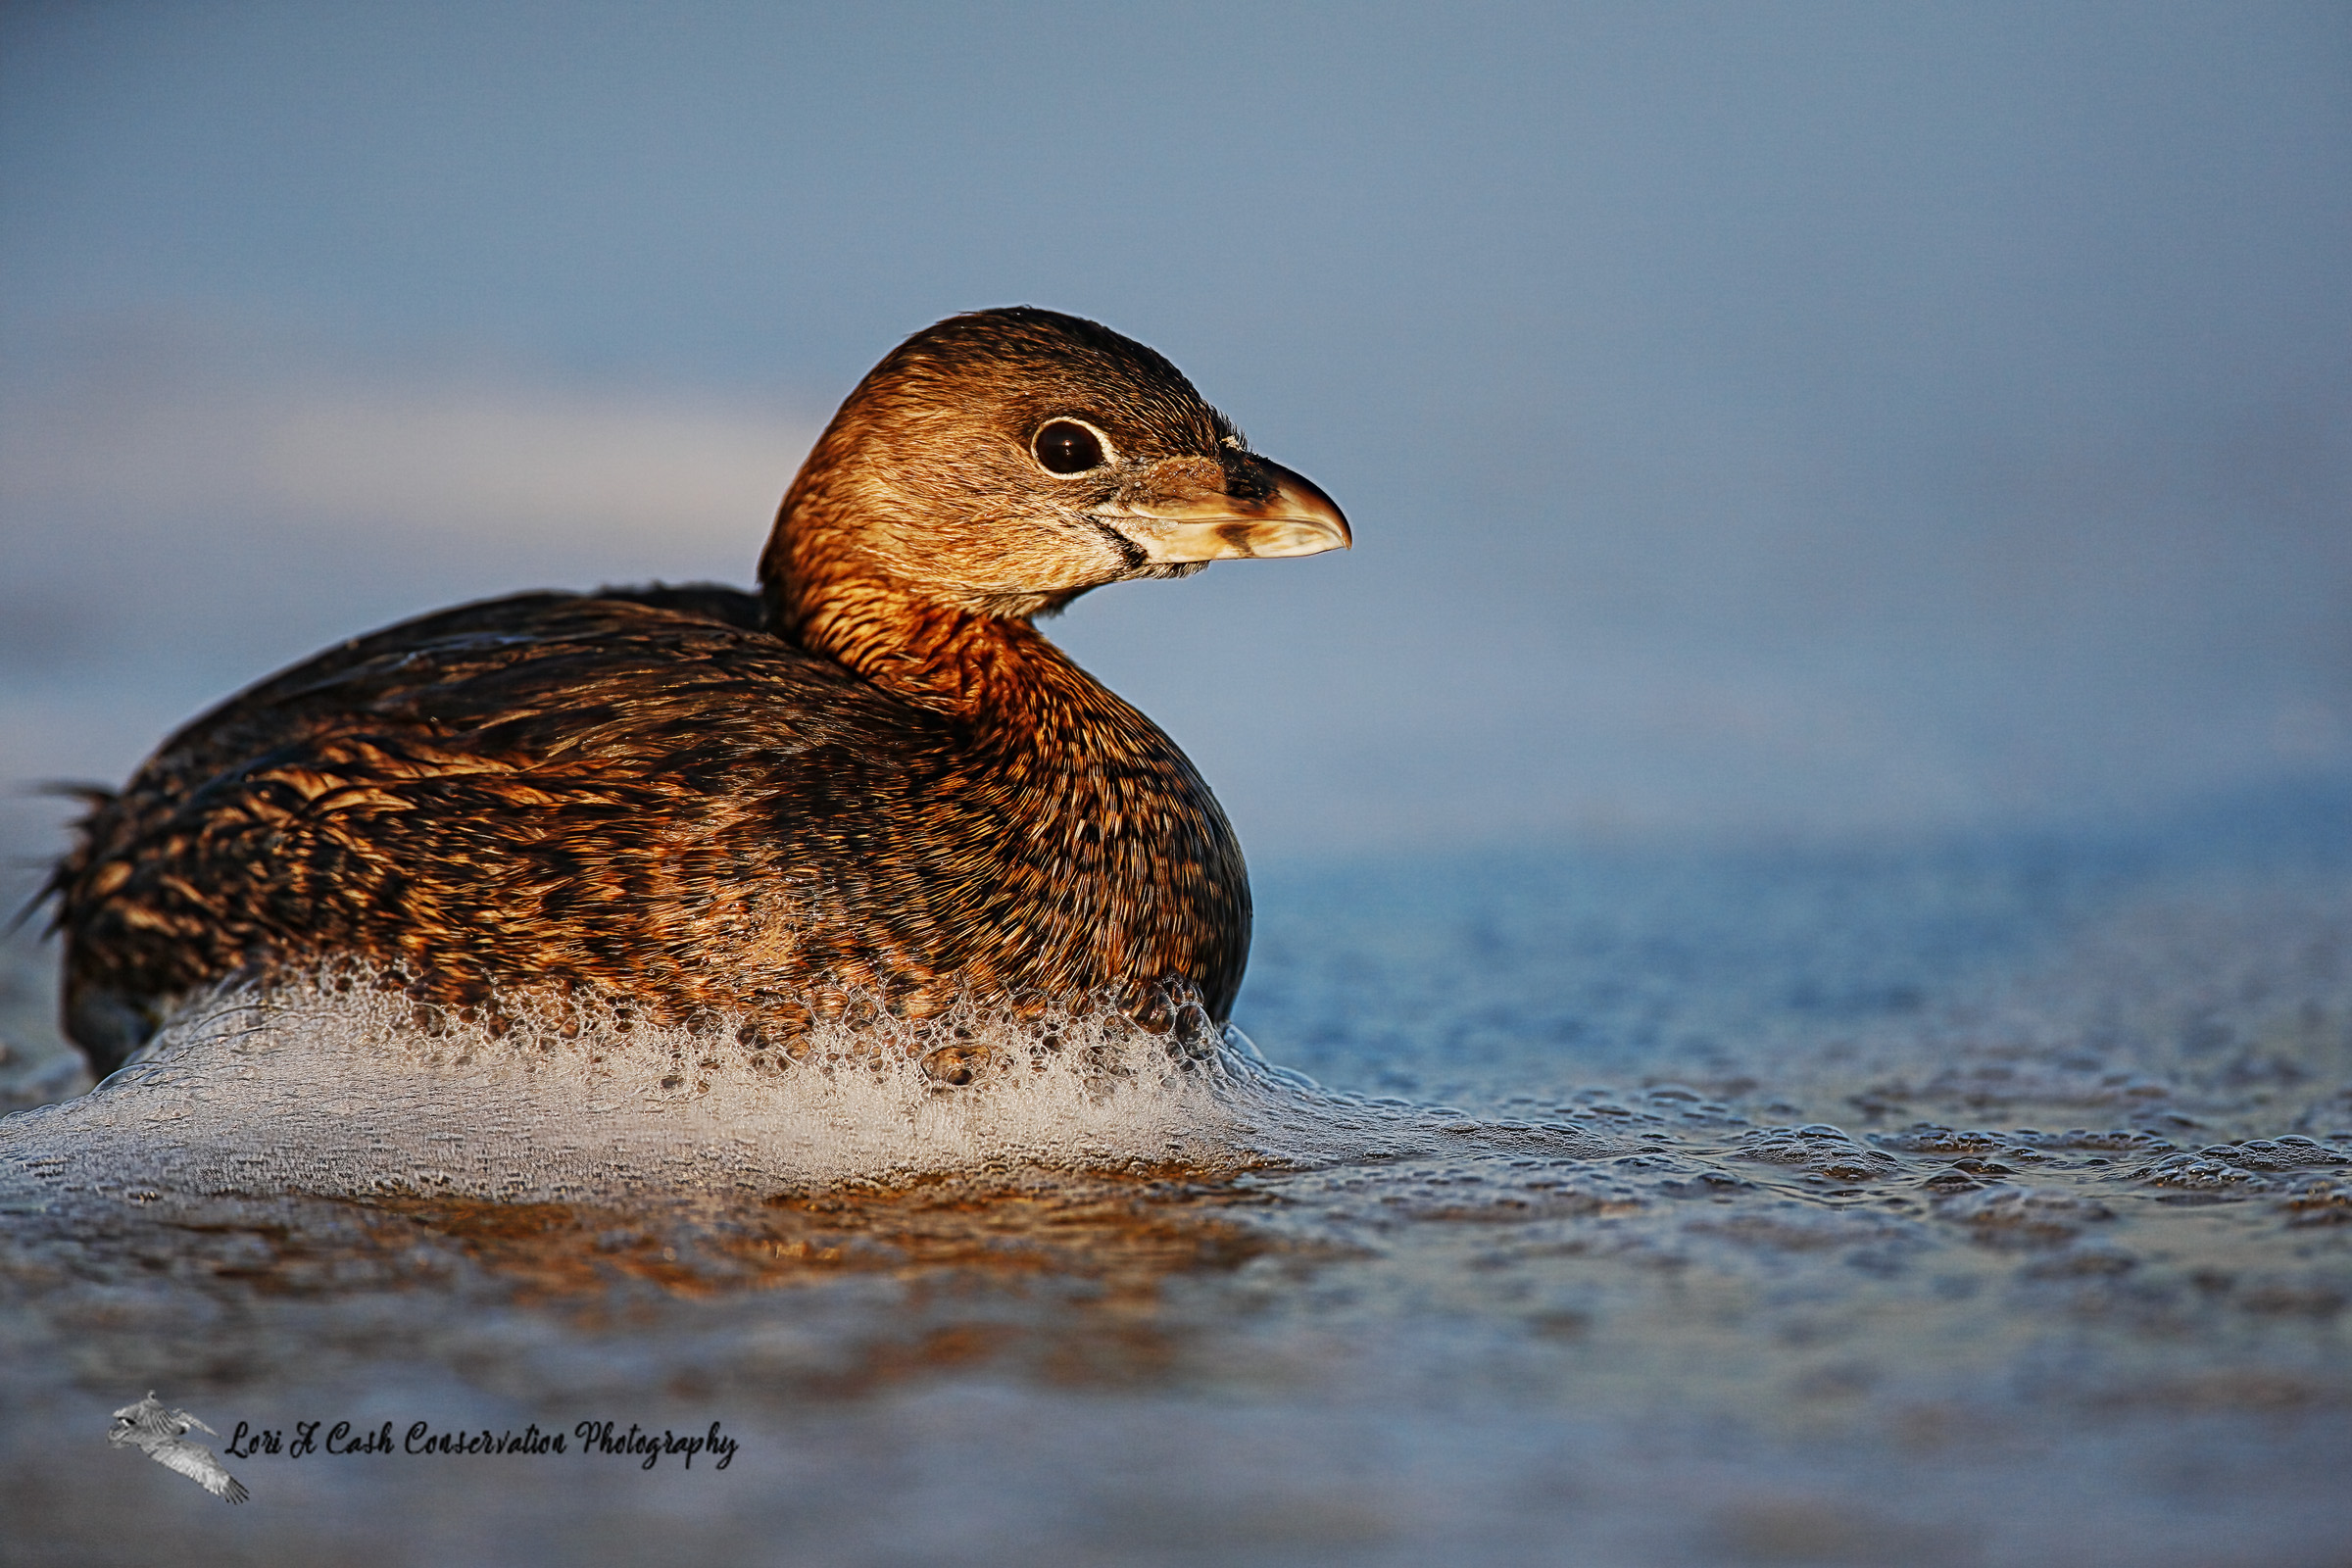 Pied-billed grebe (Podilymbus podiceps) swimming in the surf in the late afternoon at the beach in Nags Head on the Outer Banks of North Carolina.